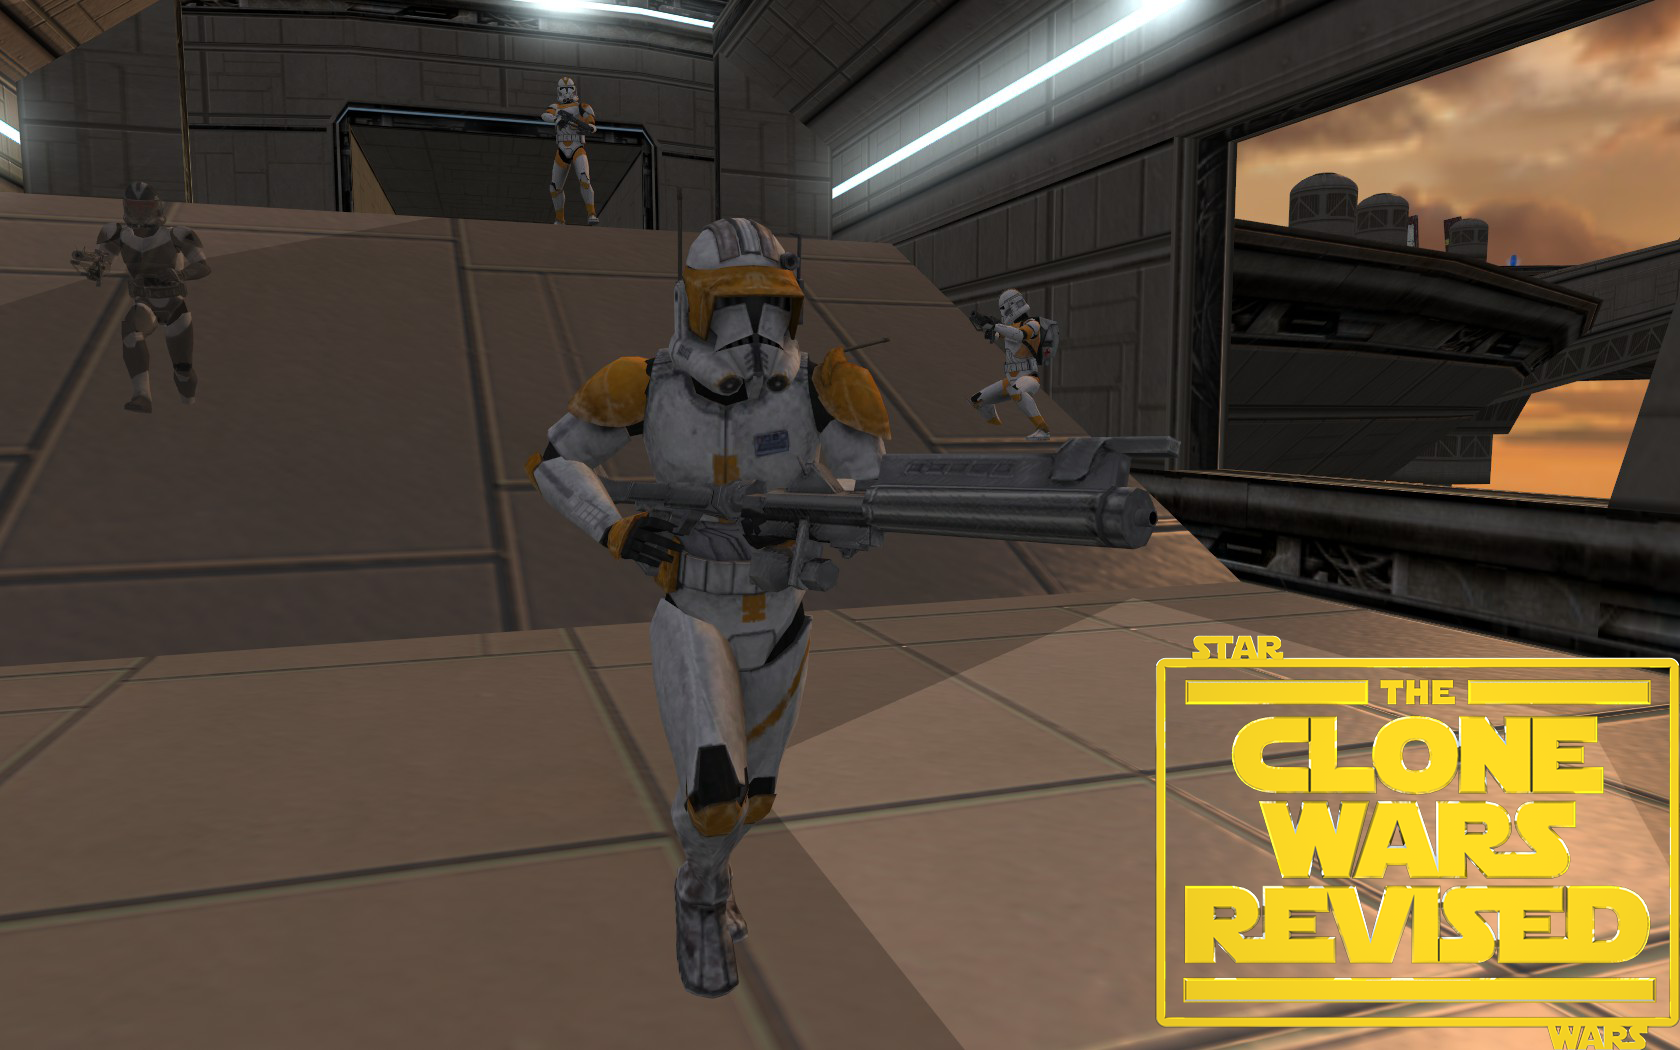 Commander Cody on Bespin Platfor